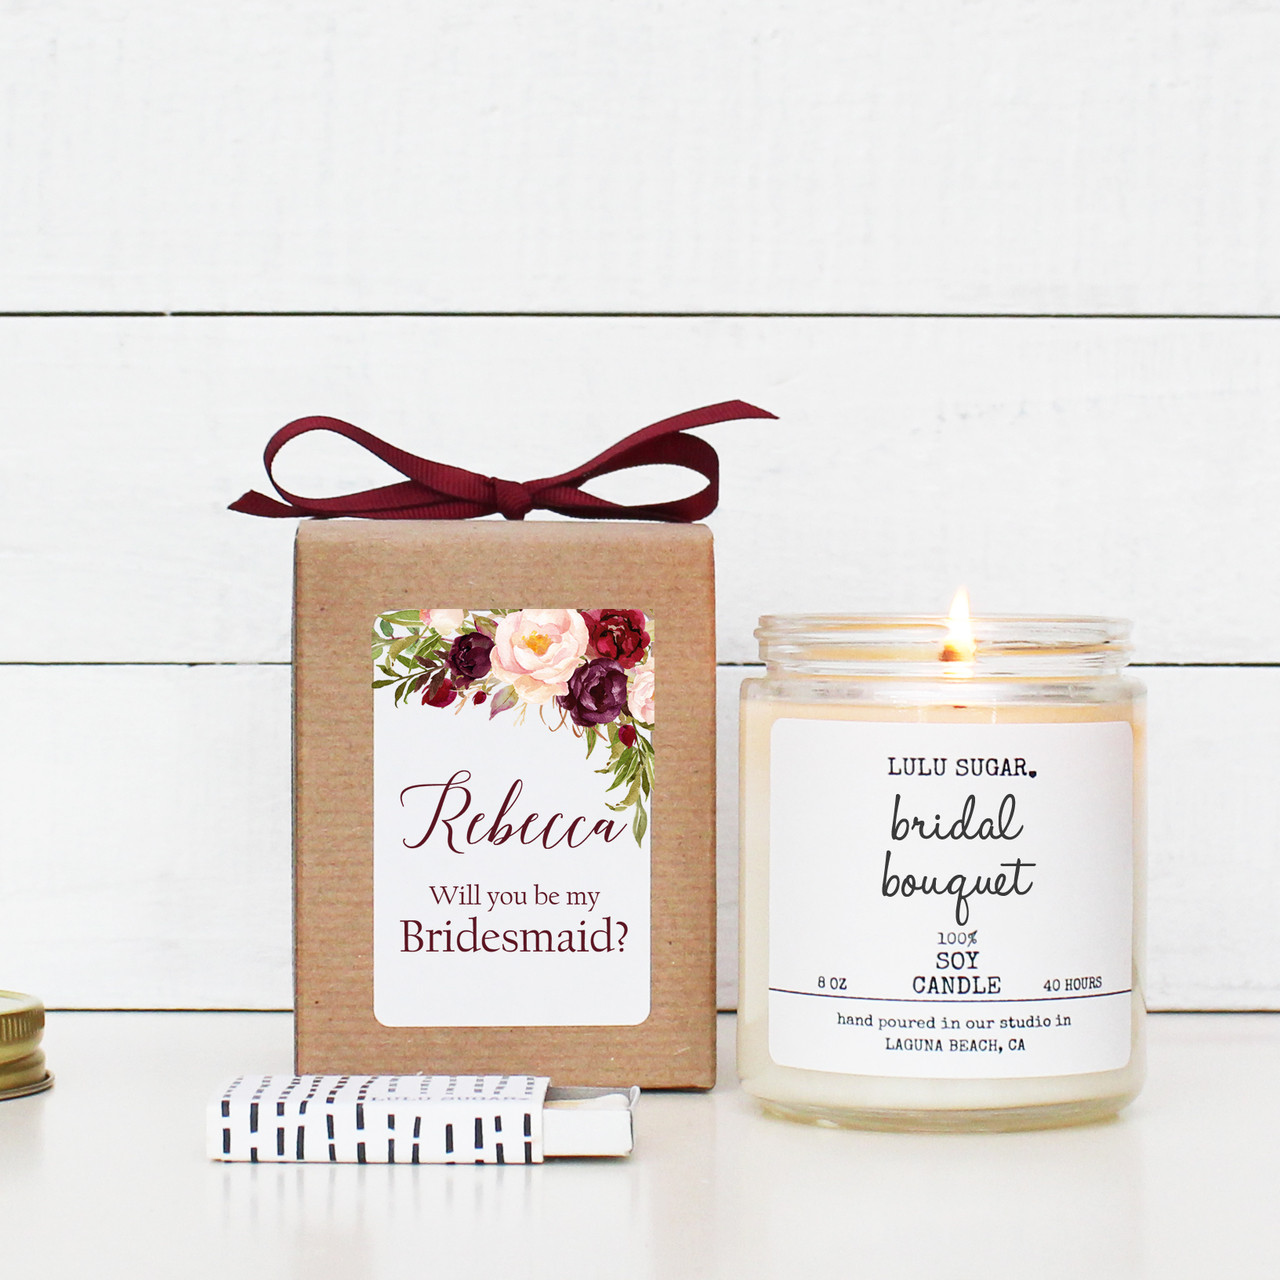 Maid of Honour 4 for £10 Thank you for being our Bridesmaid flower girl candle